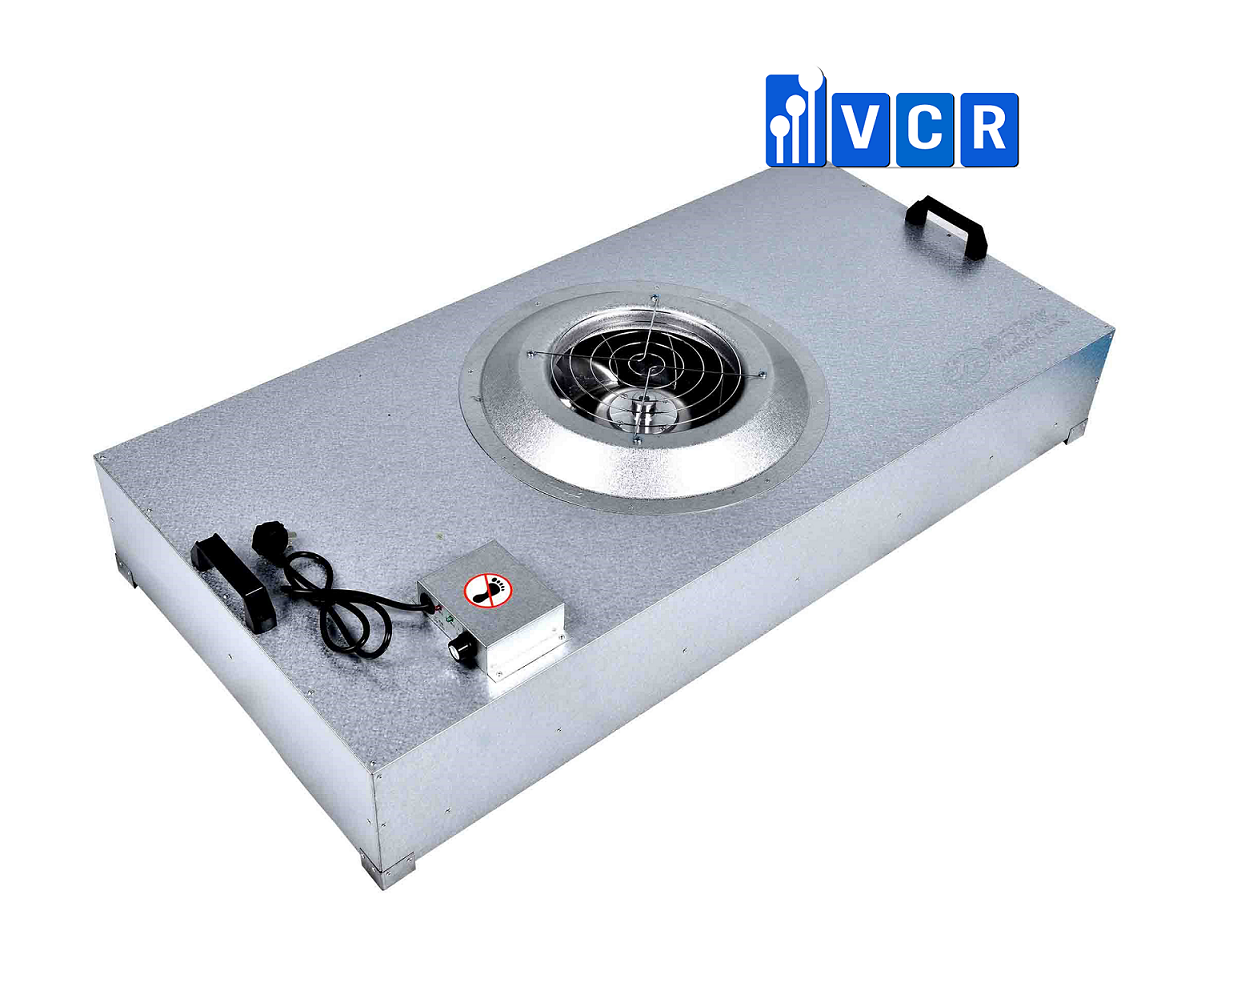 Fan Filter Unit - FFU Thép Mạ Kẽm